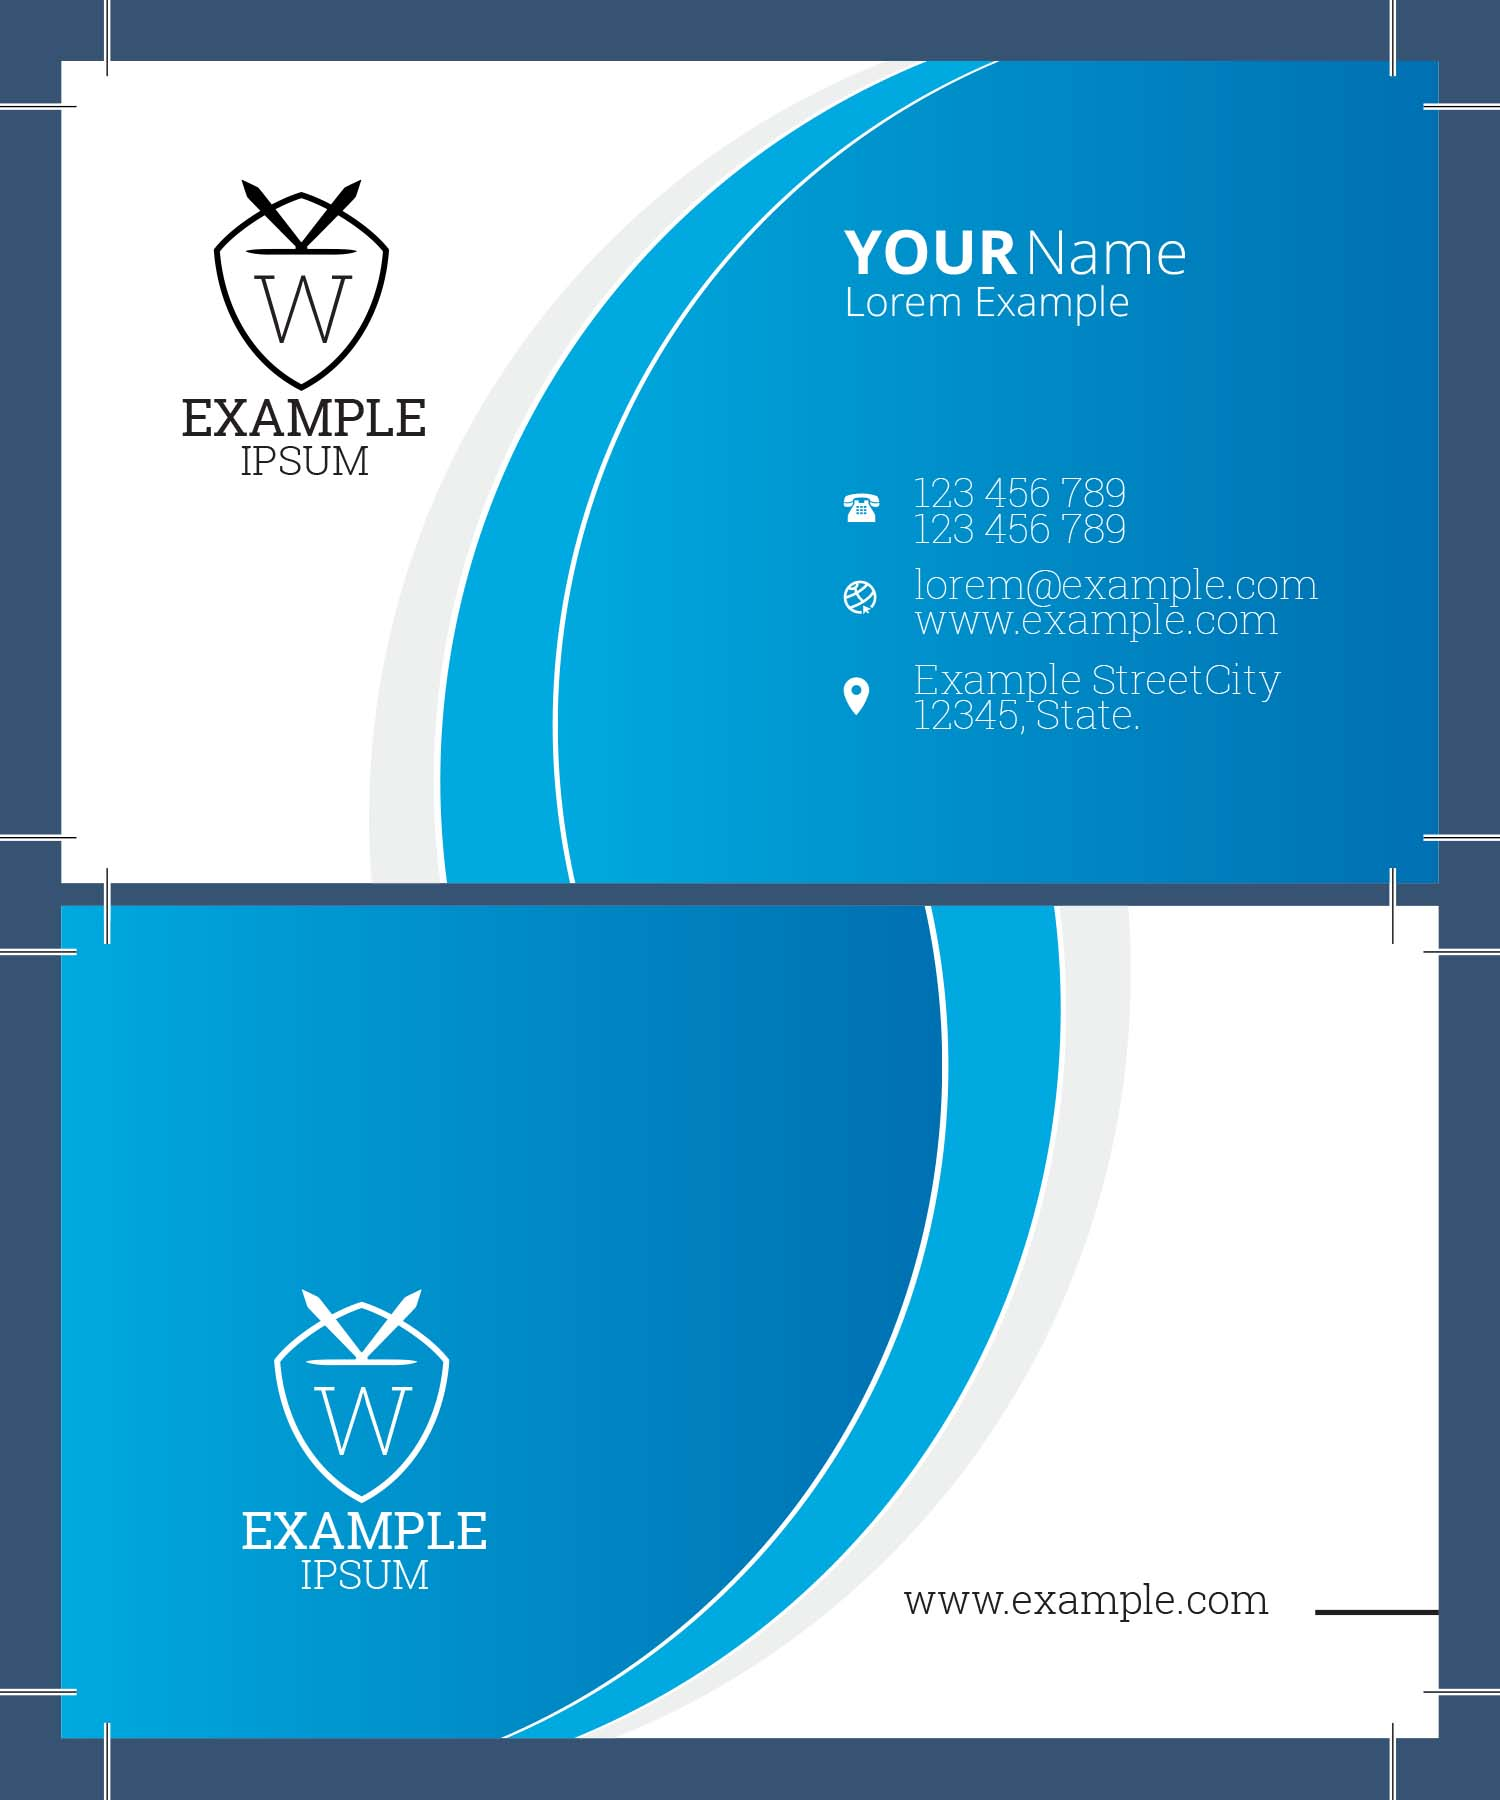 Same Day Business Cards - Free Shipping - Full Color - One Sided - (Back side printing available)